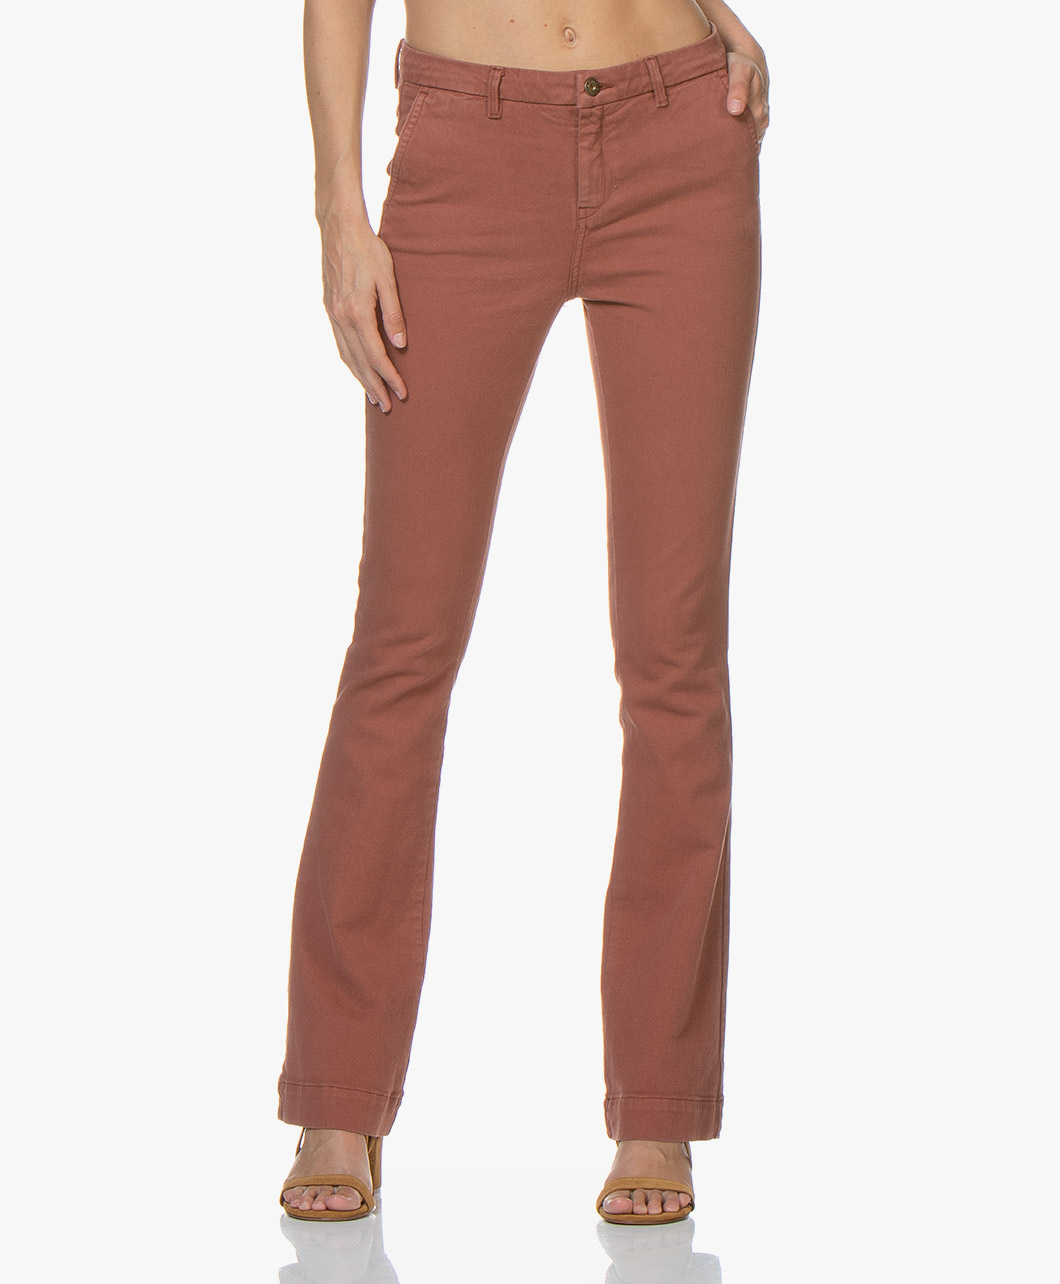 Afbeelding van BY BAR Jeans Copper Leila Flared Stretch